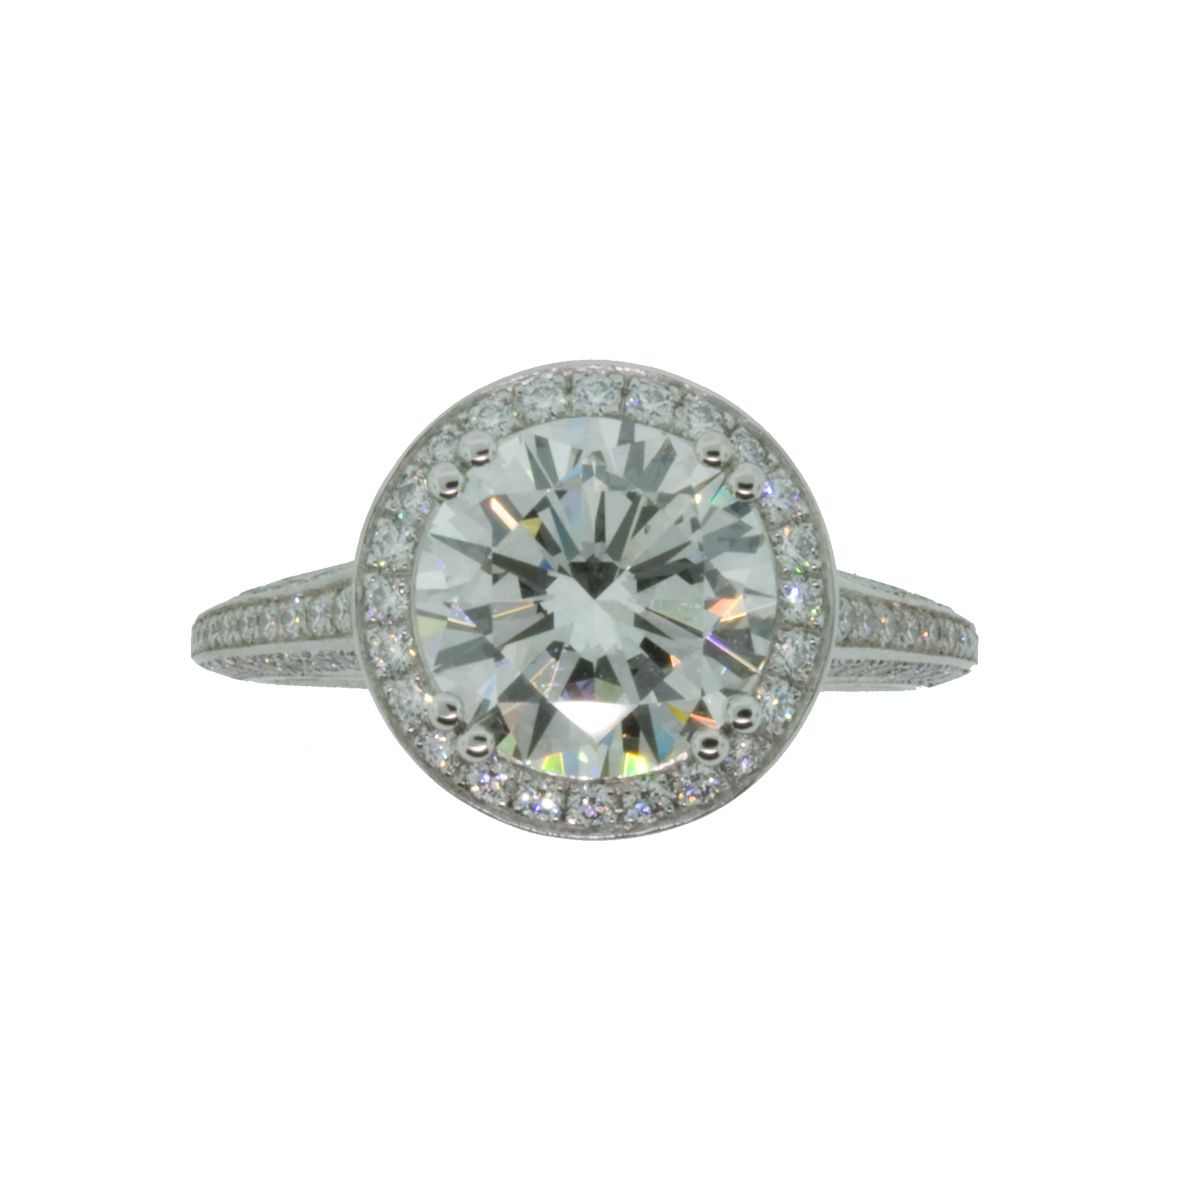 markpatterson patterson product diamond arrivals ring engagement platinum oval new rings mark